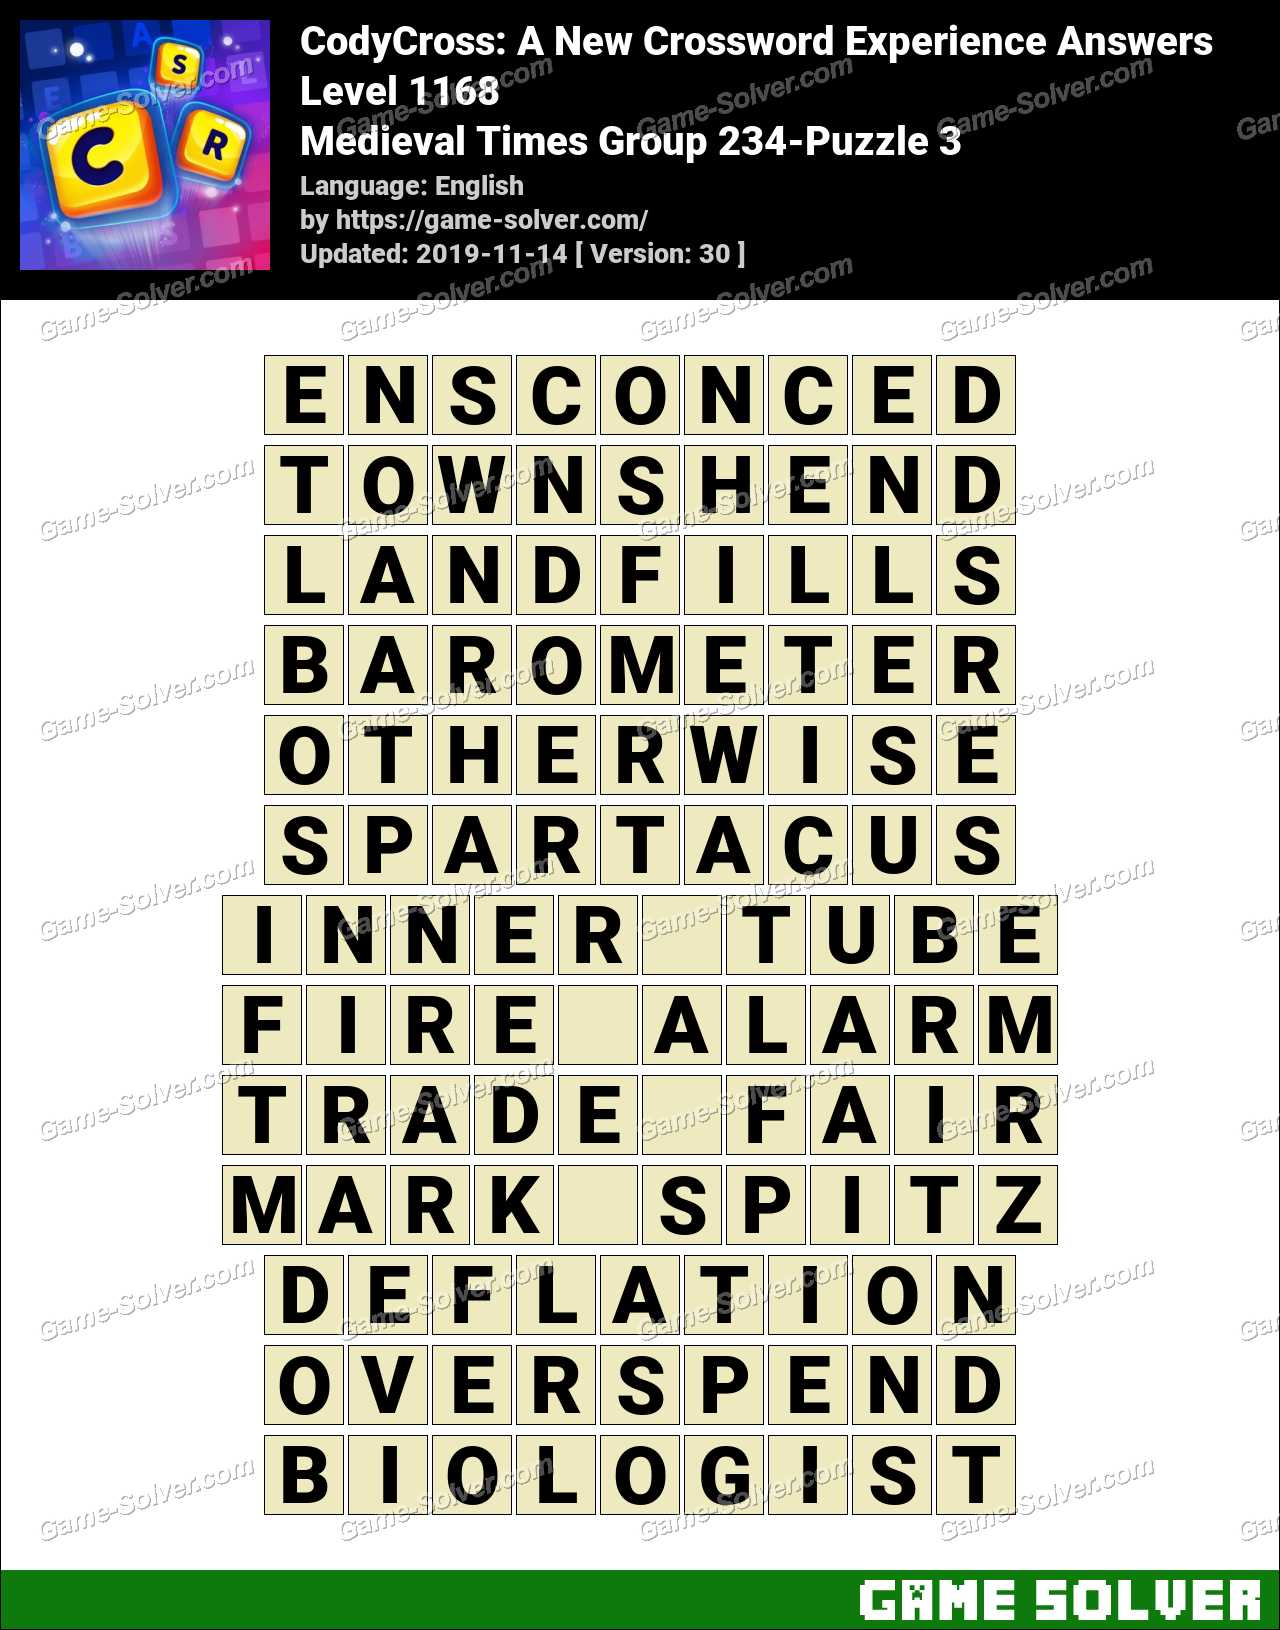 CodyCross Medieval Times Group 234-Puzzle 3 Answers